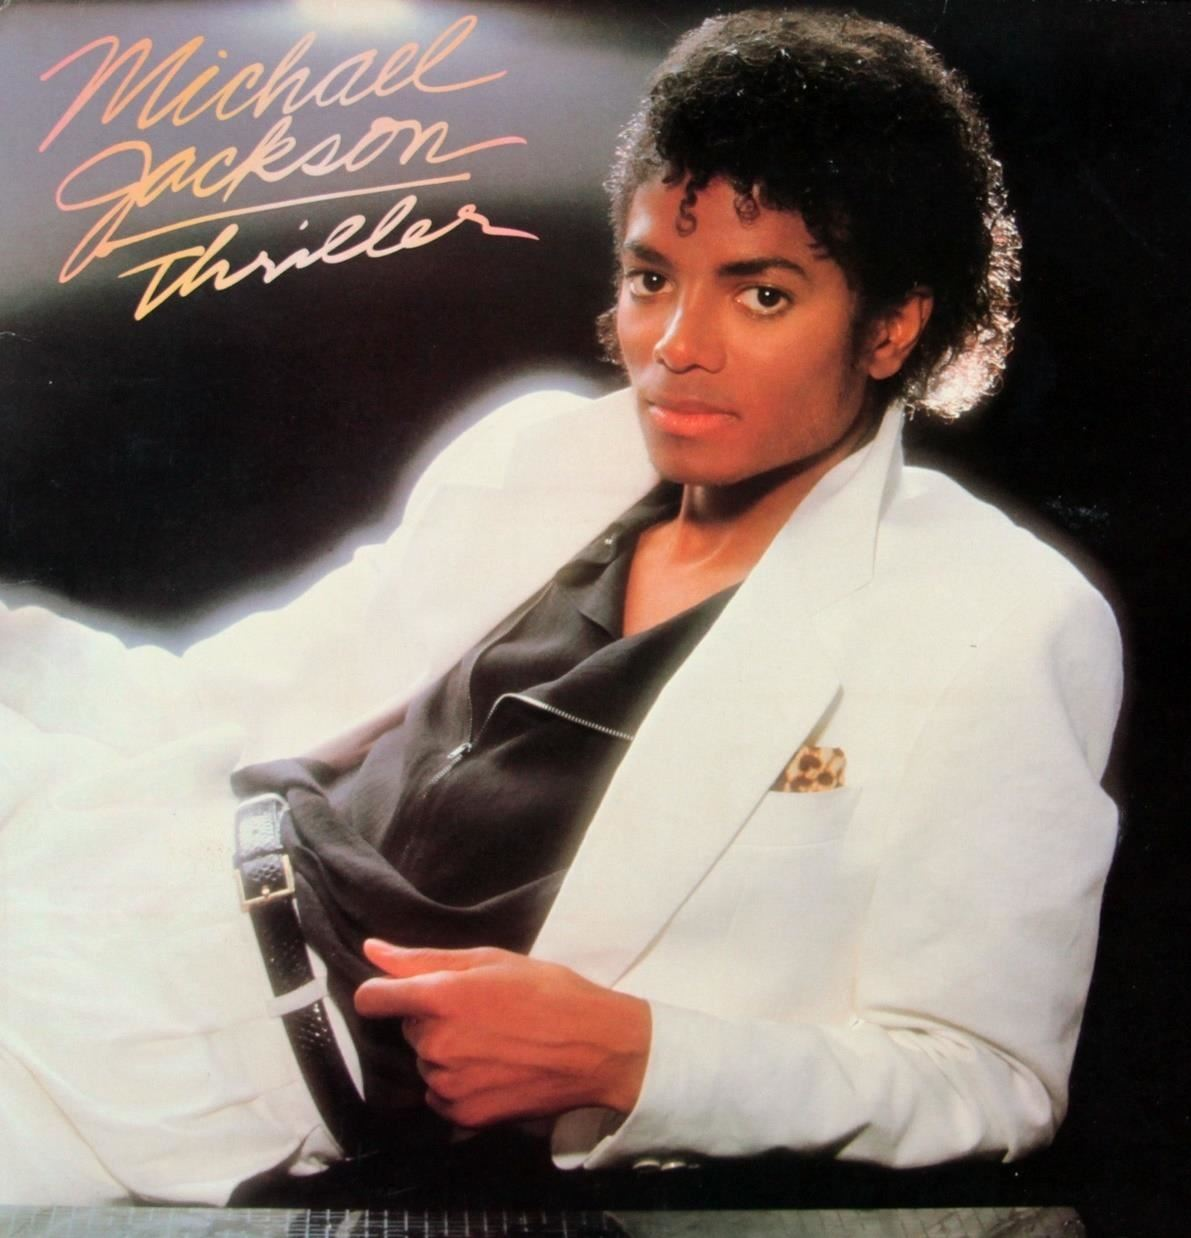 Get Michael Jackson's Thriller (& Rare Bonus Track) For Free from Google for a Limited Time